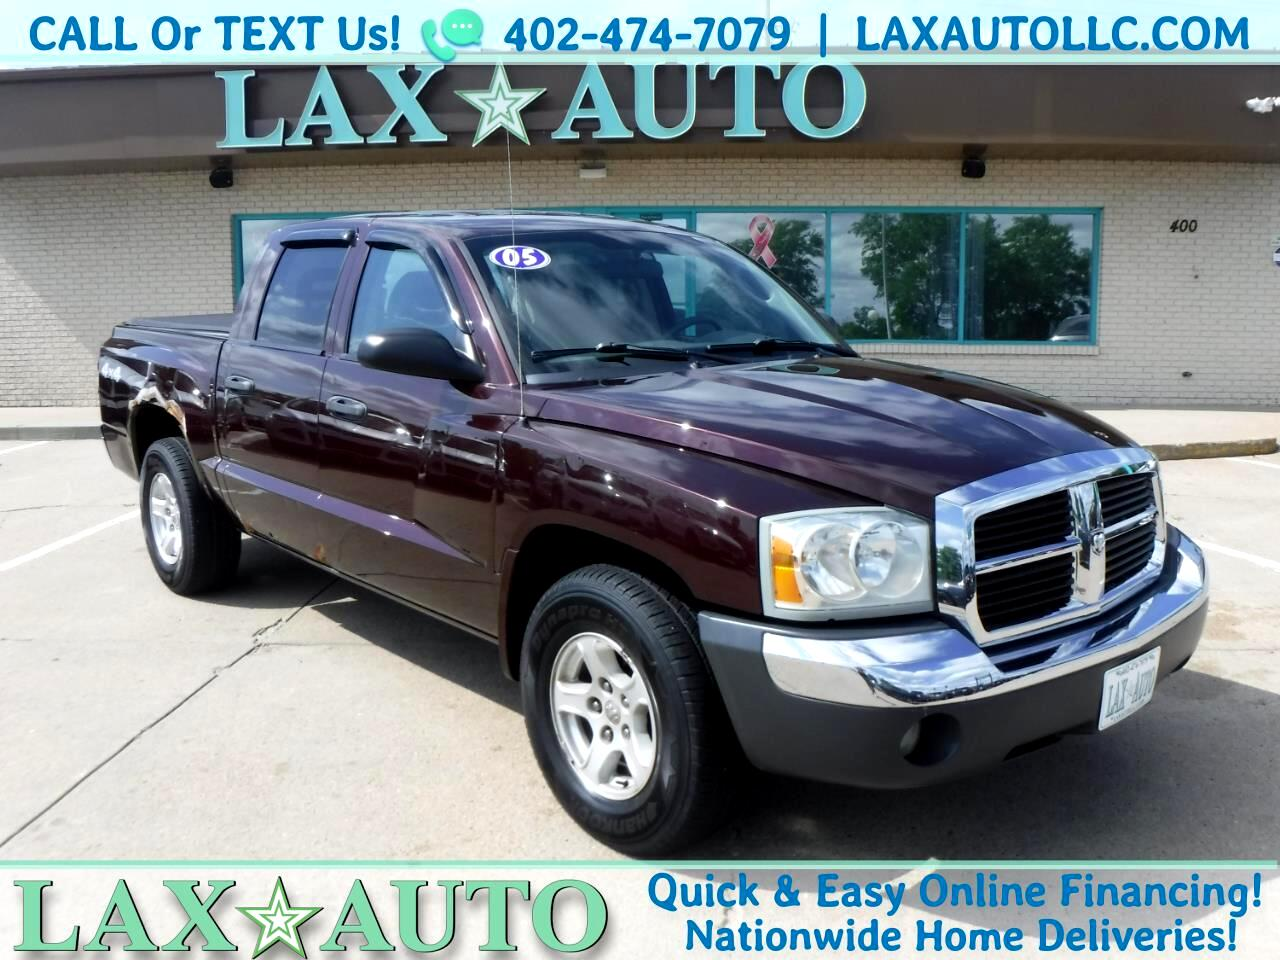 2005 Dodge Dakota SLT Quad Cab 4WD w/ 114K Miles *